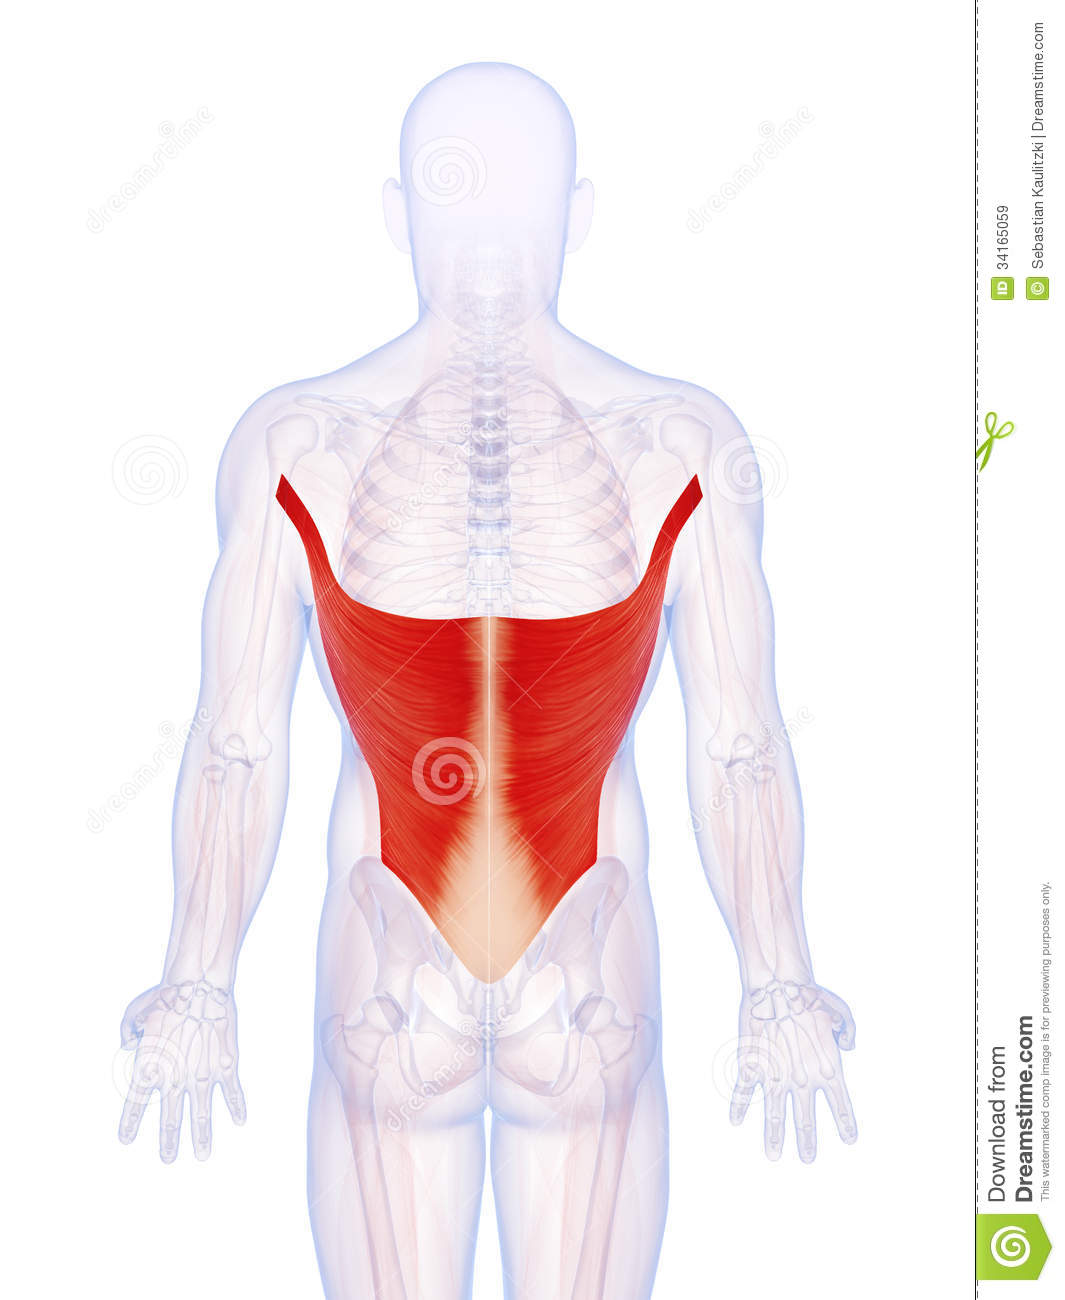 the latissimus dorsi muscle royalty free stock images - image, Muscles